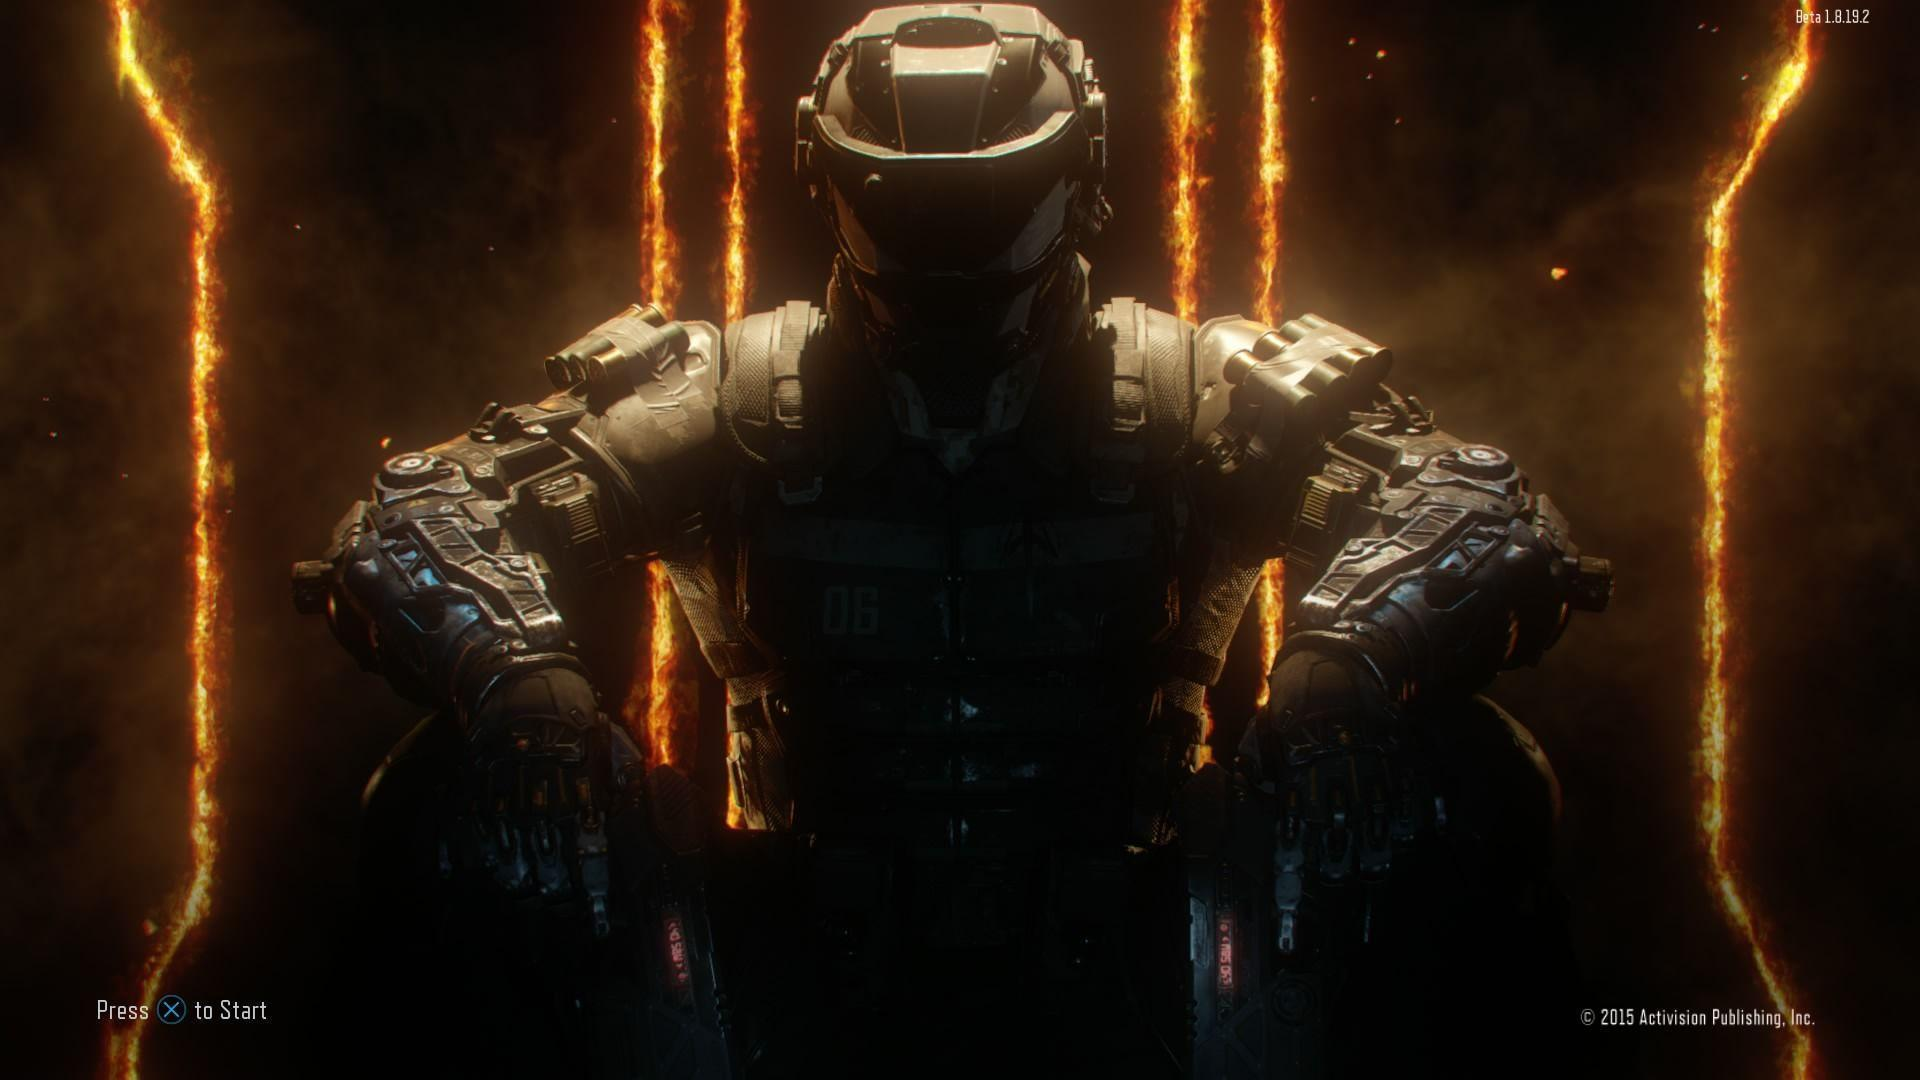 Call Of Duty Black Ops 3 Wallpapers Mobile - Mytwiink.com